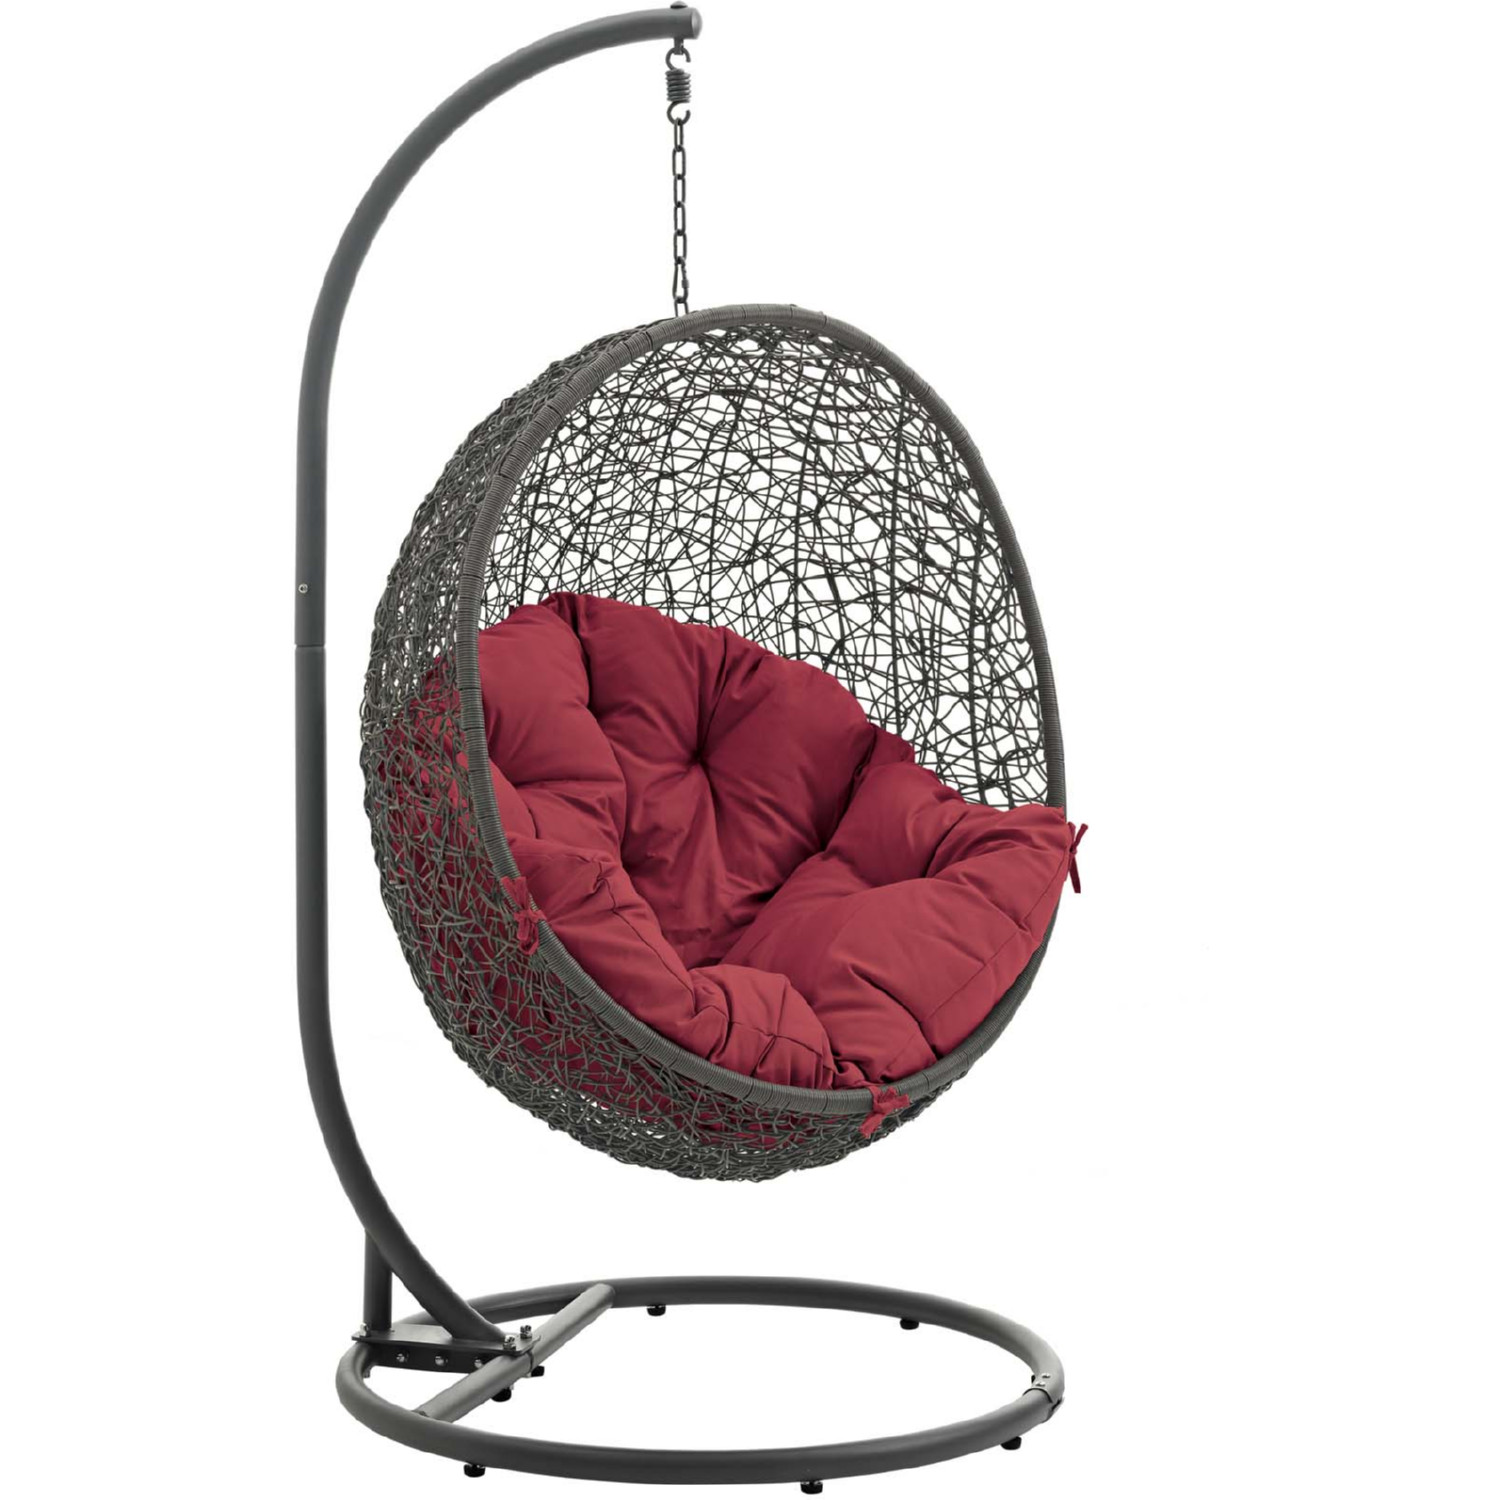 Modway Eei 2273 Gry Red Hide Outdoor Patio Swing Chair In